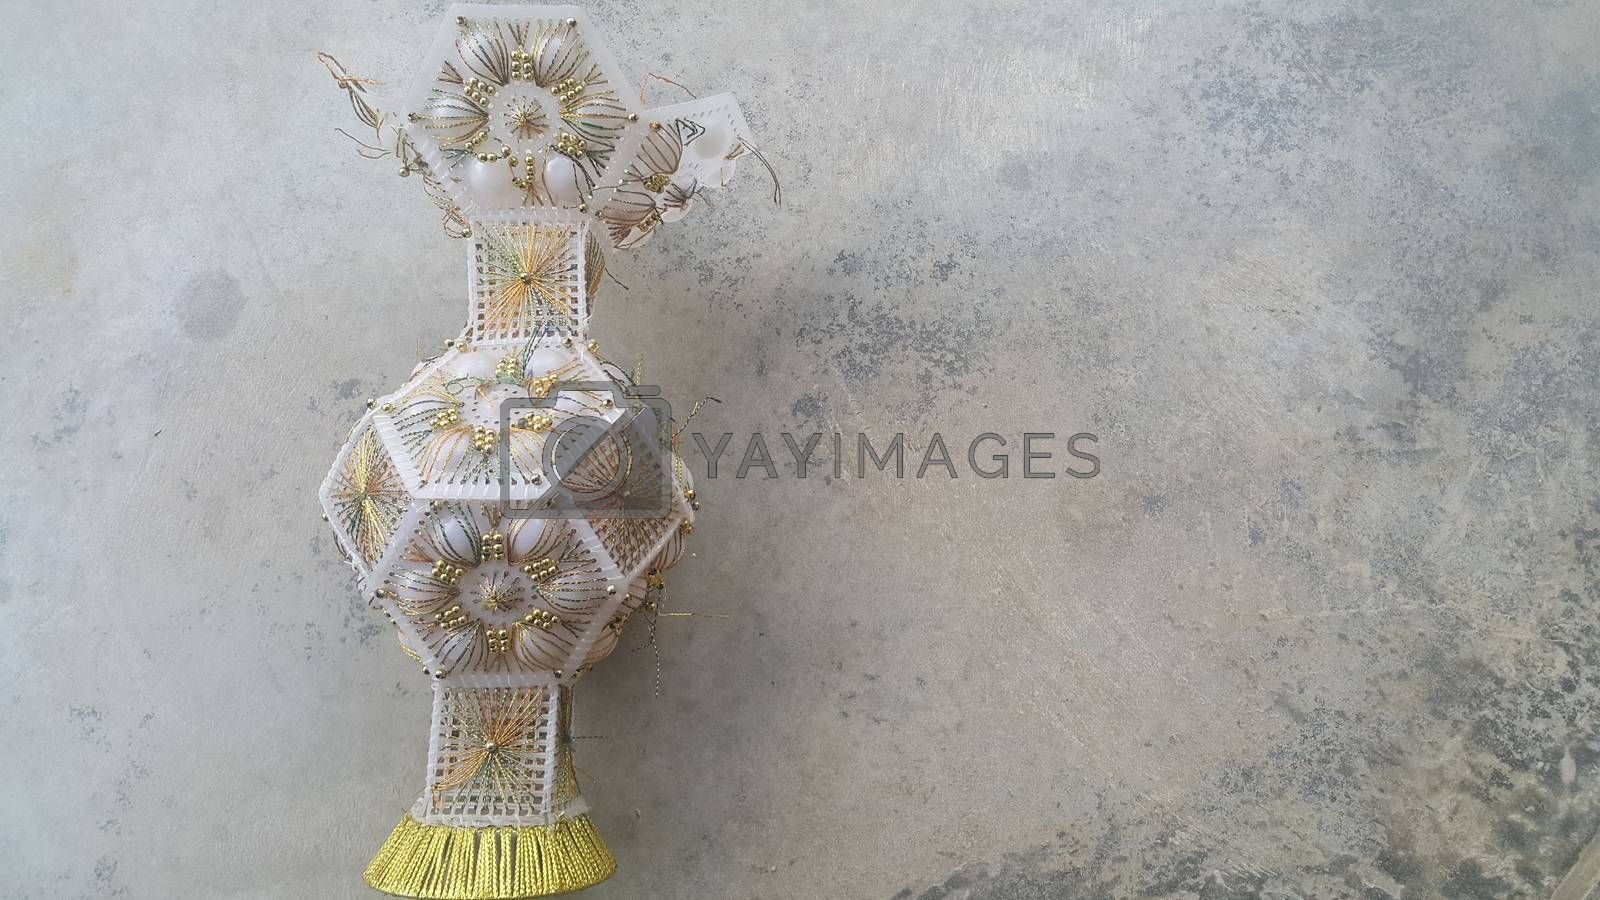 A beautiful ceramic vase placed on a grey floor. The ceramic vase has lovely designs and is used for flowers or bouquet